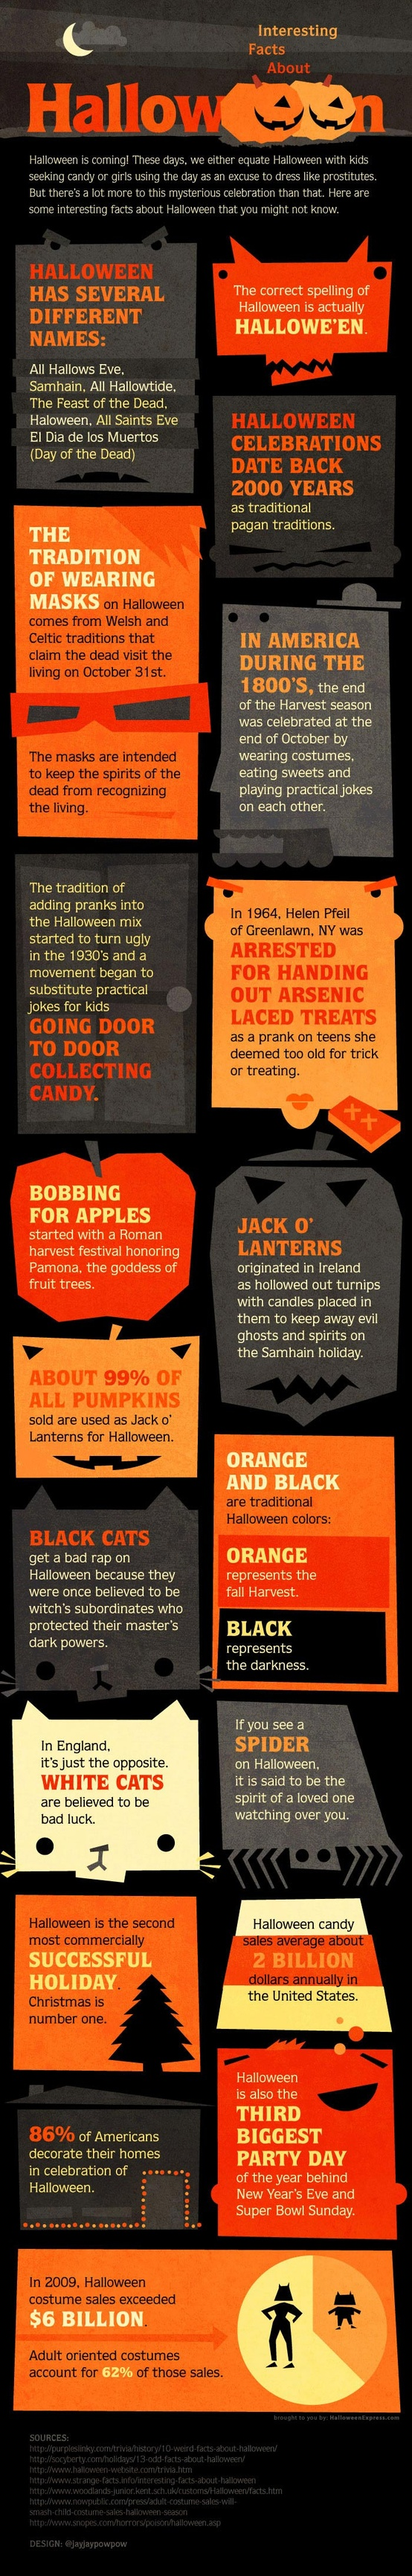 Infographic by HalloweenExpress.com